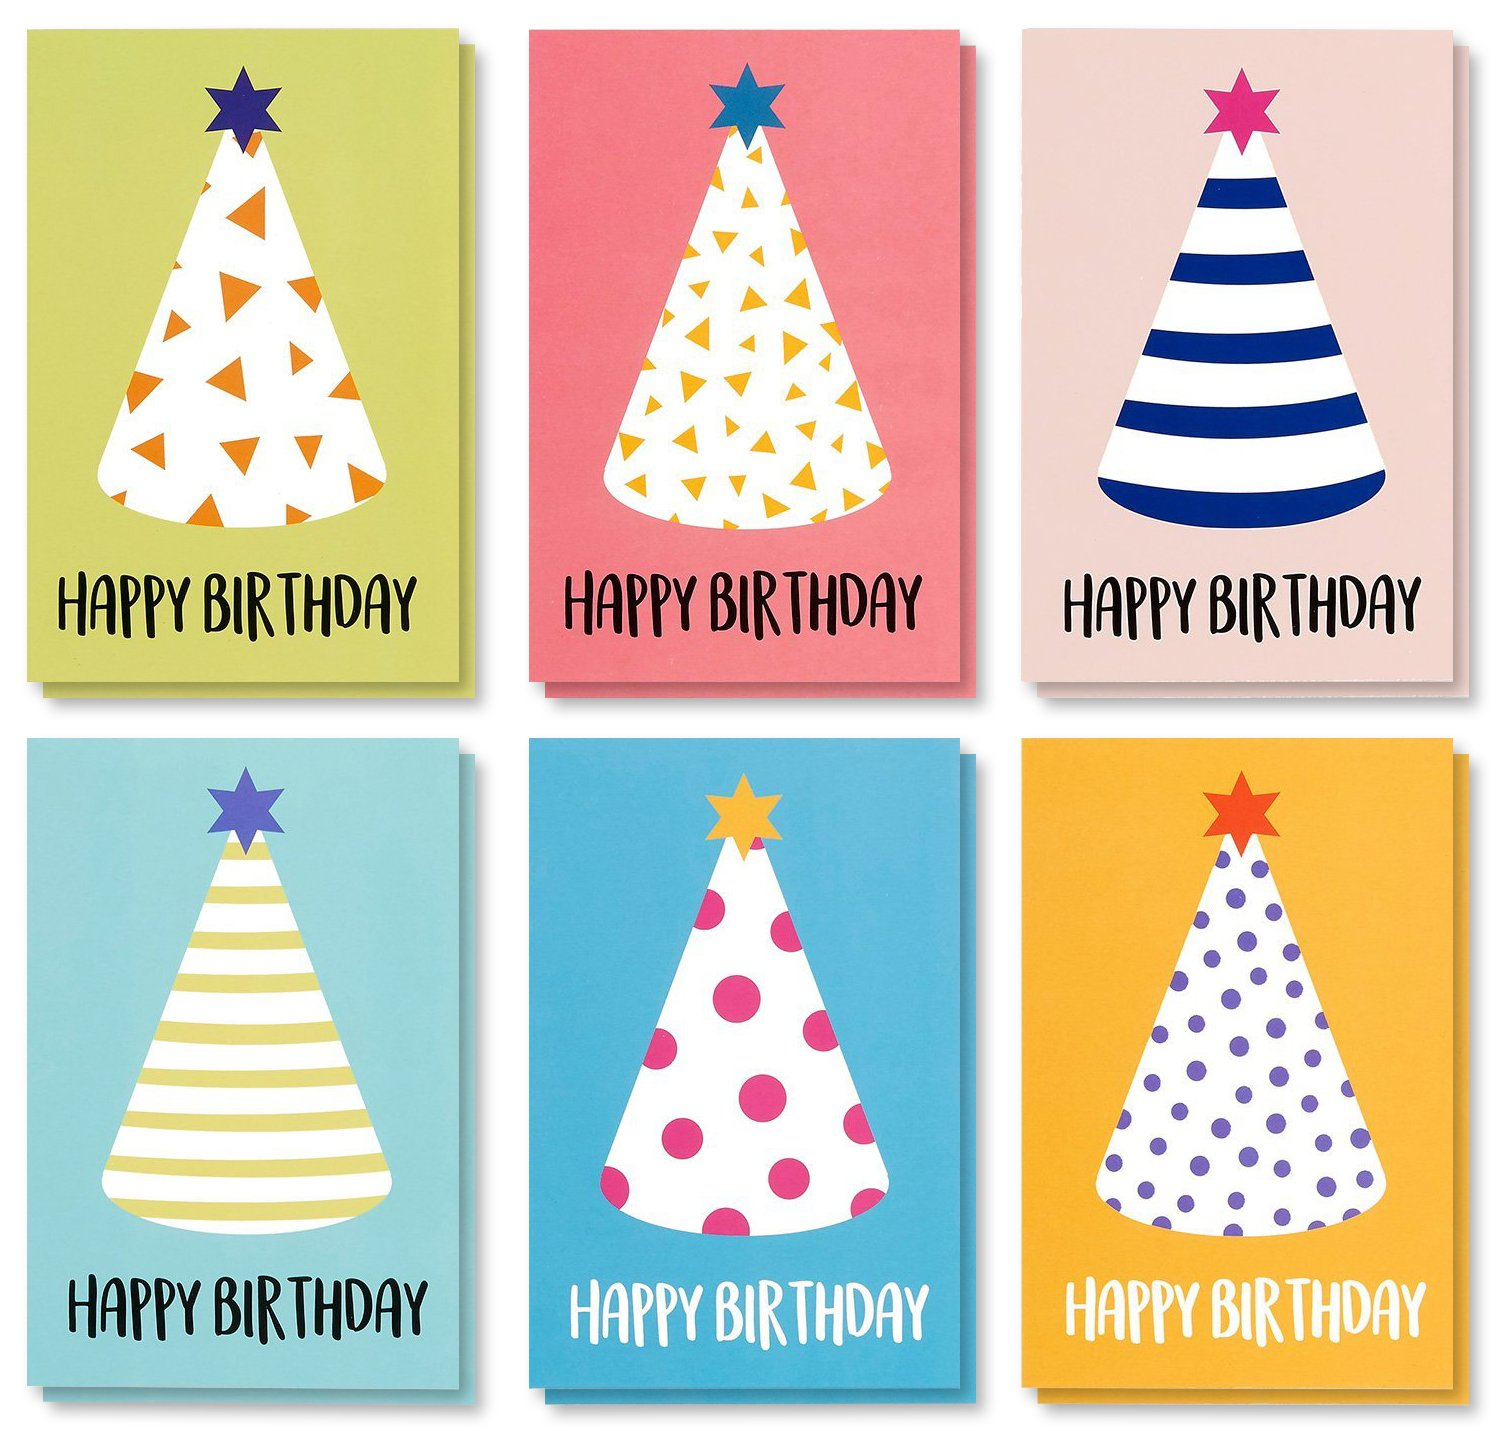 Best Paper Greetings Birthday Card - 48-Pack Birthday Cards Box Set, Happy Birthday Cards - Party Hats Designs Birthday Card Bulk, Envelopes Included, 4 x 6 Inches Juvale